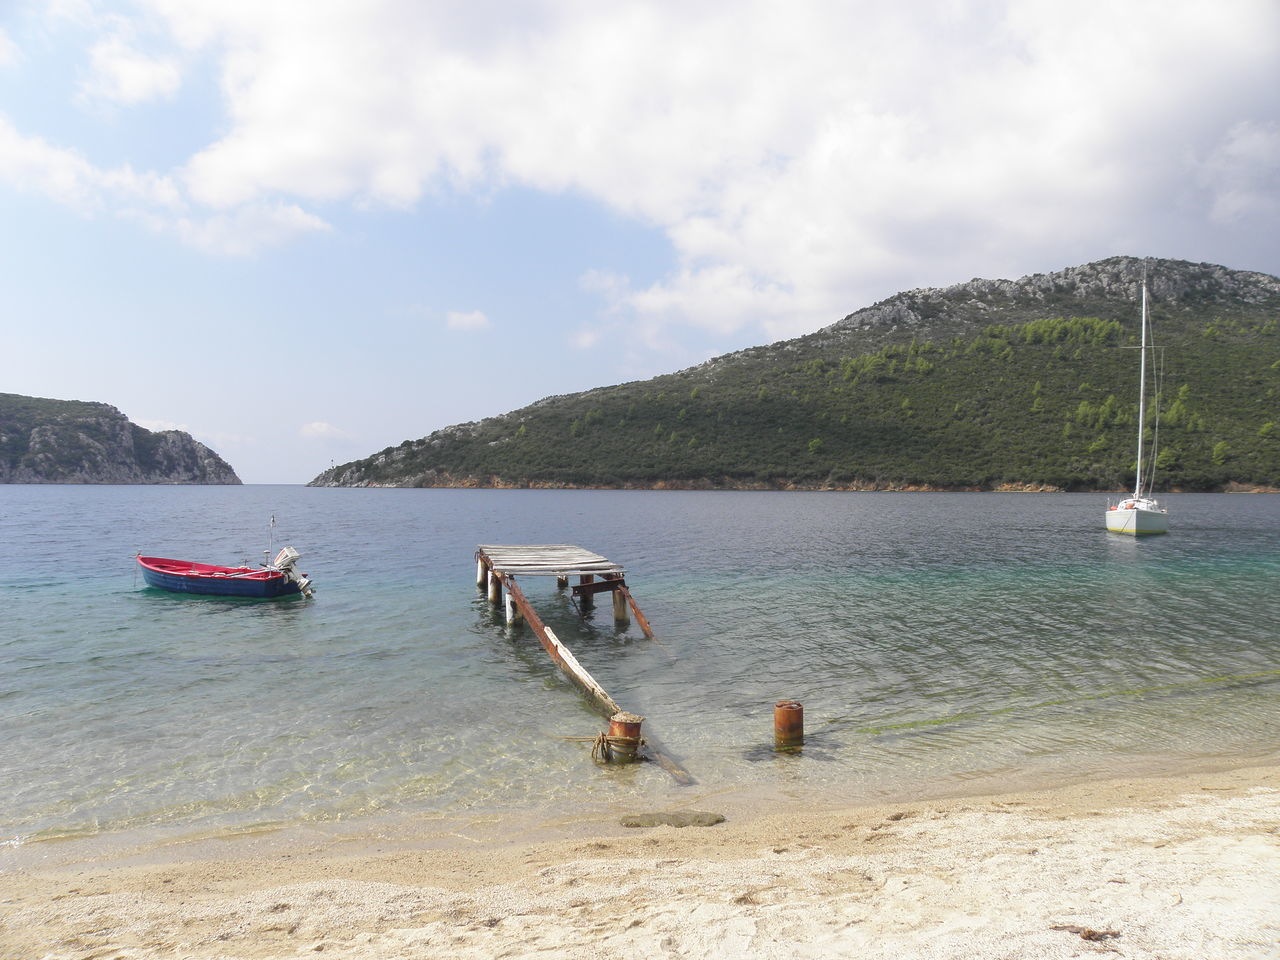 Bay Beach Best Beaches Boat Calm Sea Sithonia Day Greece Harbor Harbour Heart Mode Of Transport Moored Mountain Naturalistic Nature Nautical Vessel No People Outdoors Paradise Pier Sailing Seascape Sky Water